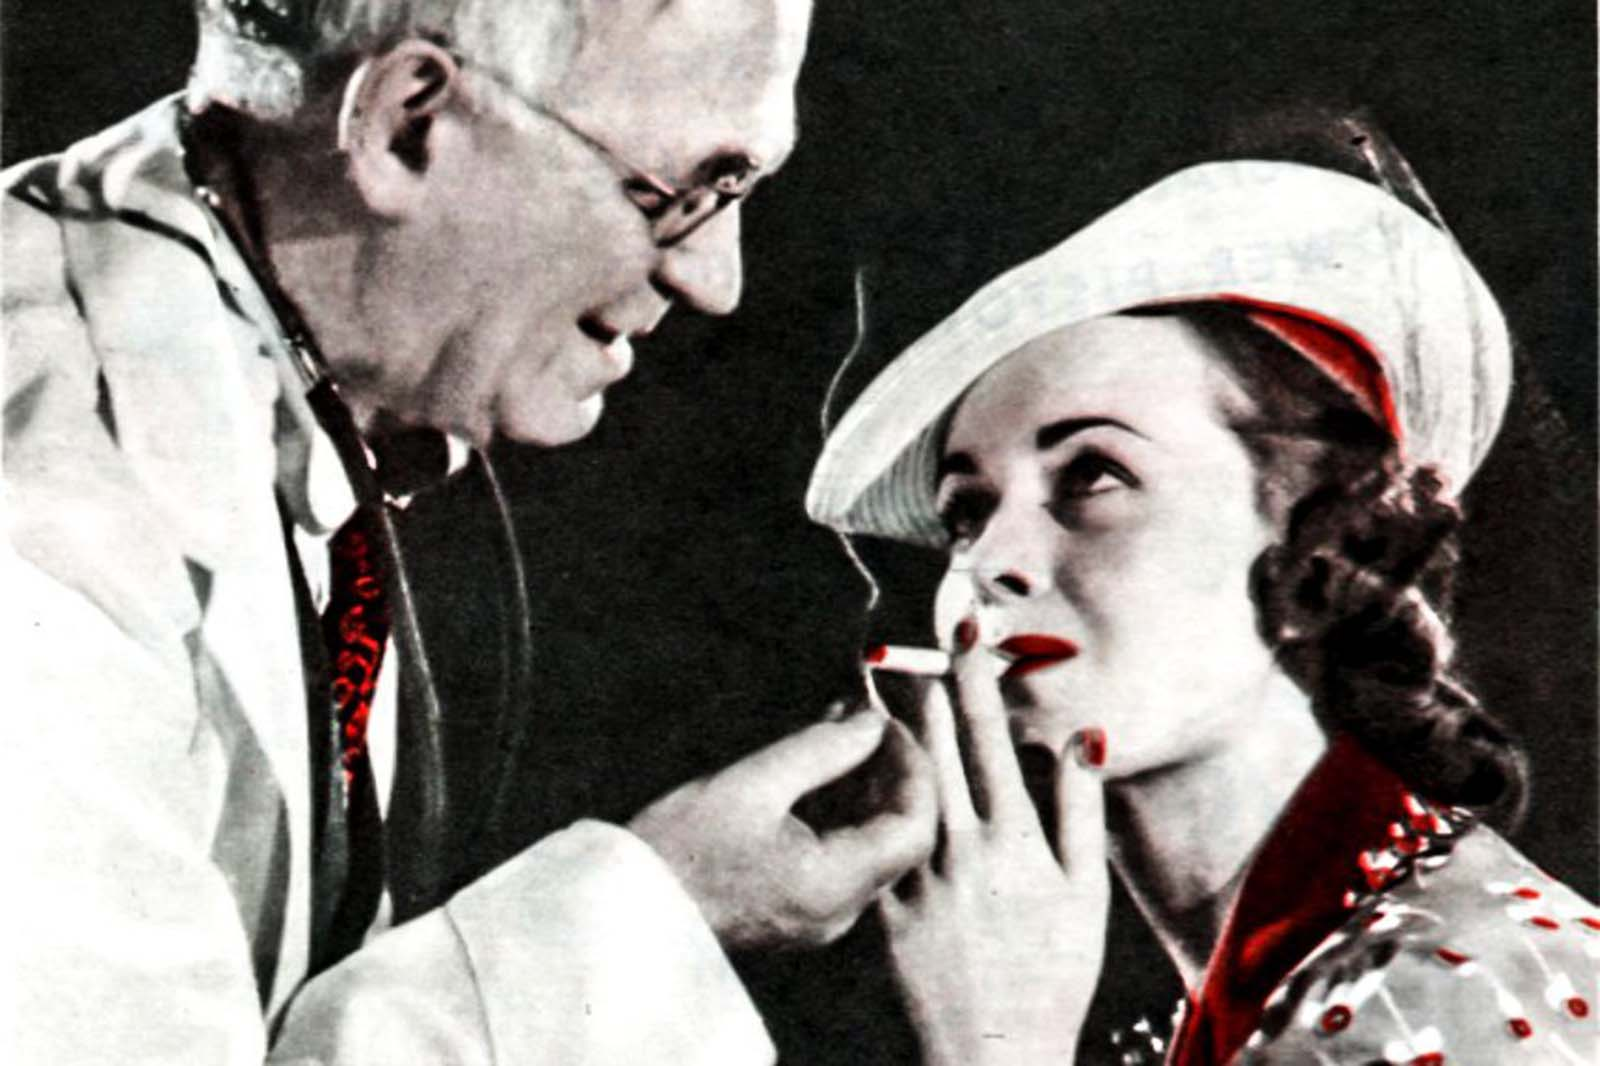 Decades before the full-fledged public health campaign against smoking, tobacco companies tried to align their brands with doctors using bribery and ludicrous health claims.